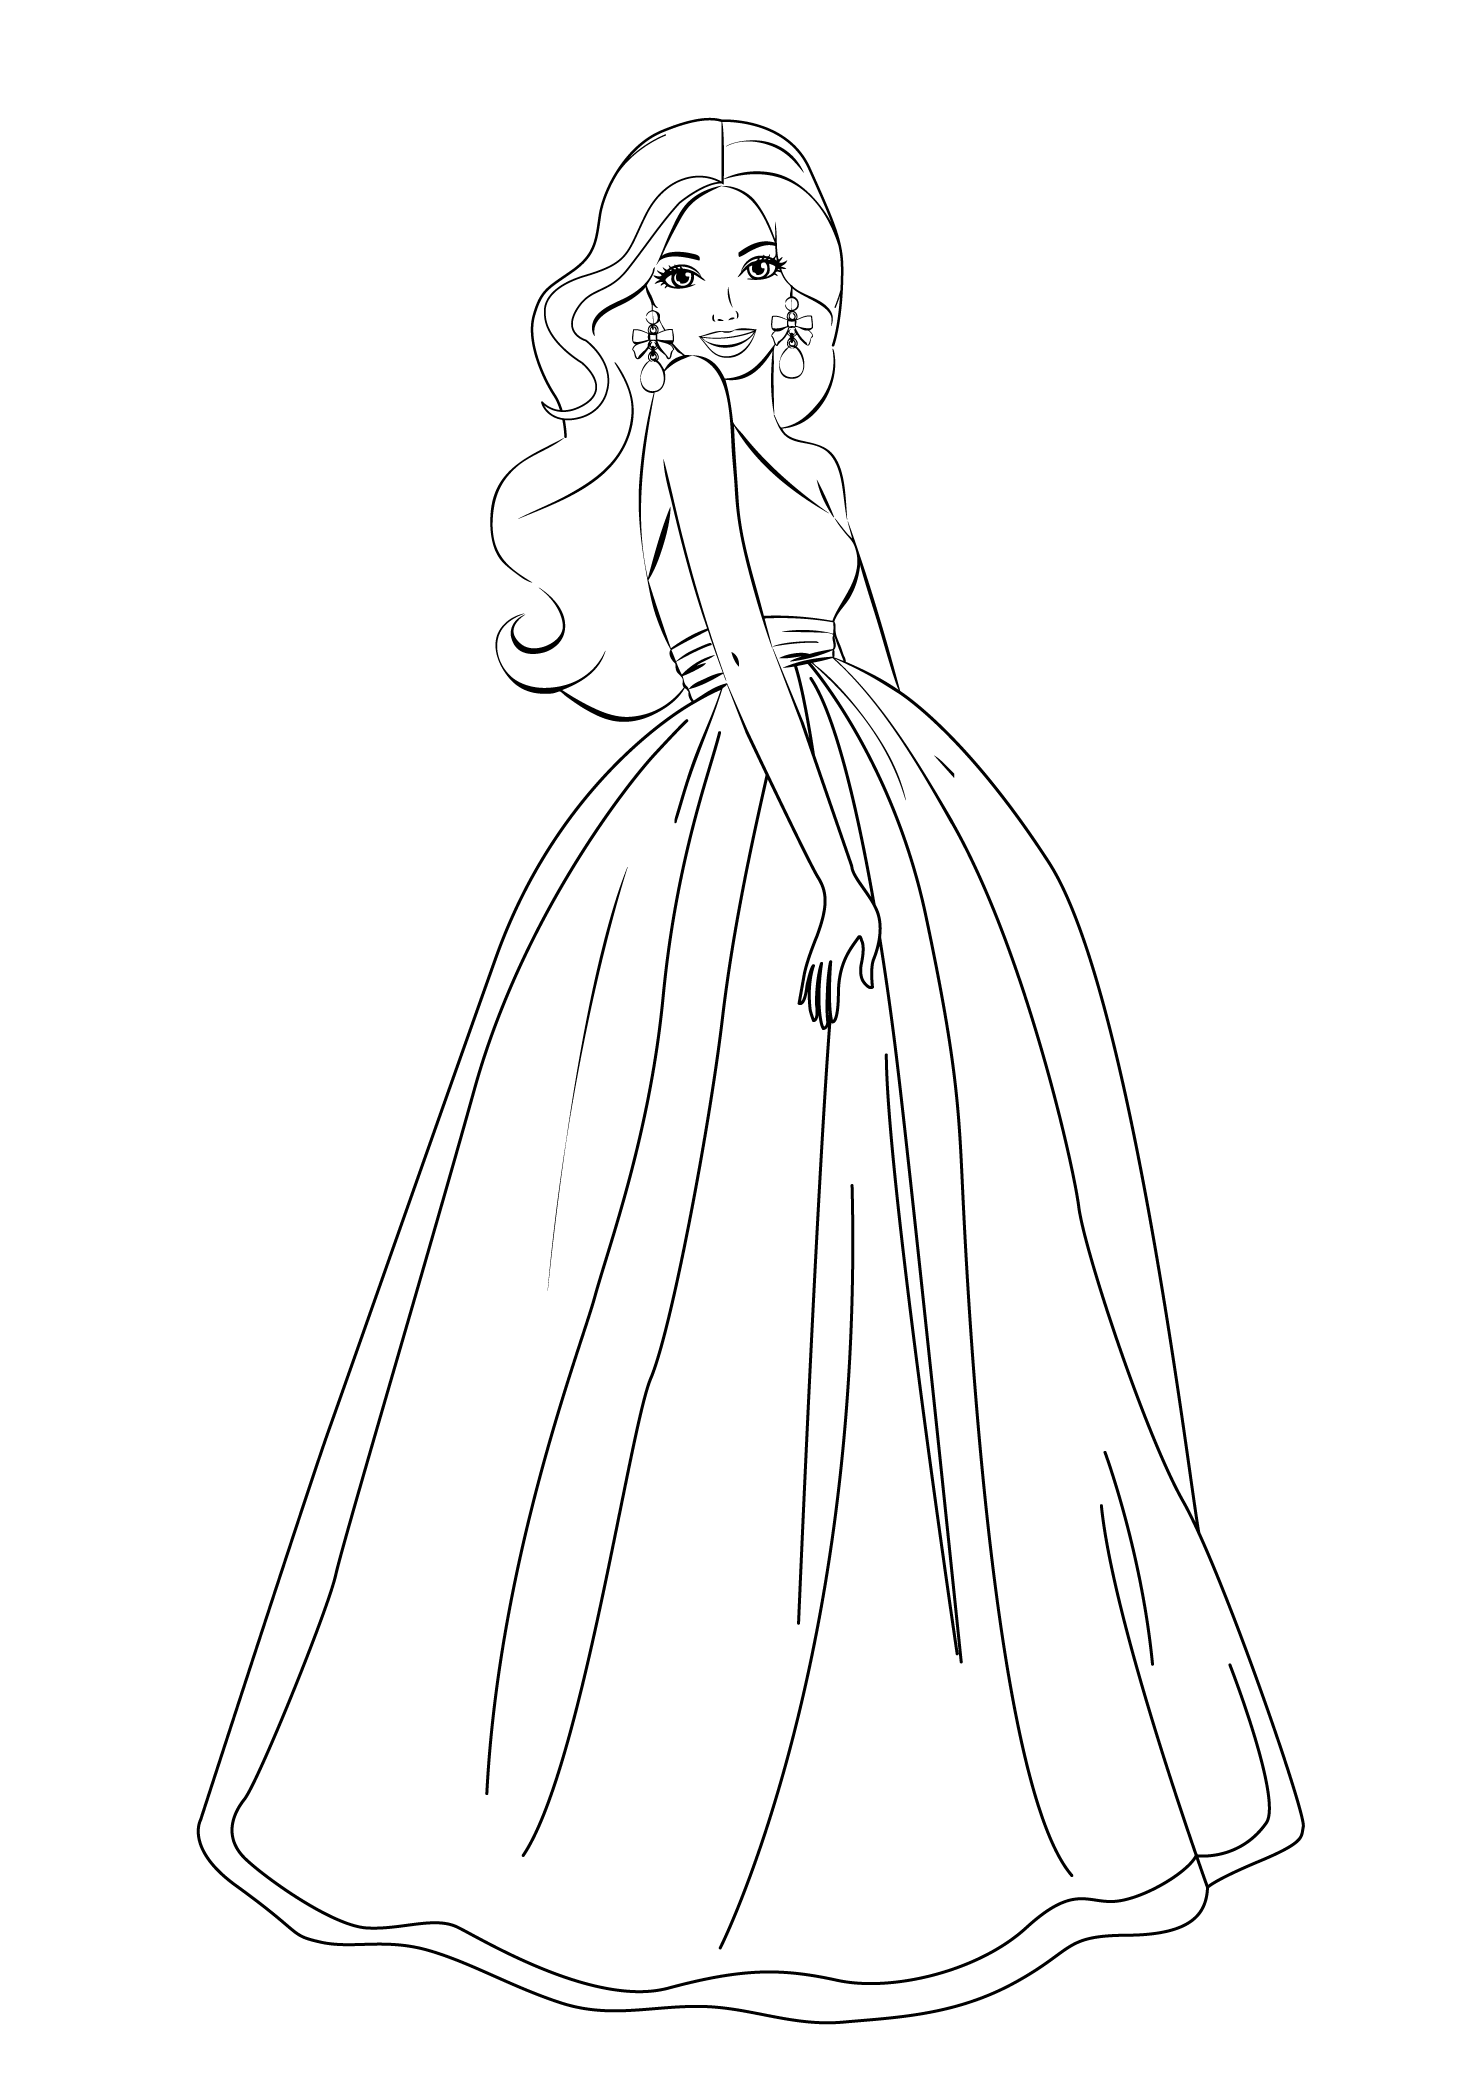 coloring picture of girl adult coloring page girl portrait and clothes colouring of picture coloring girl